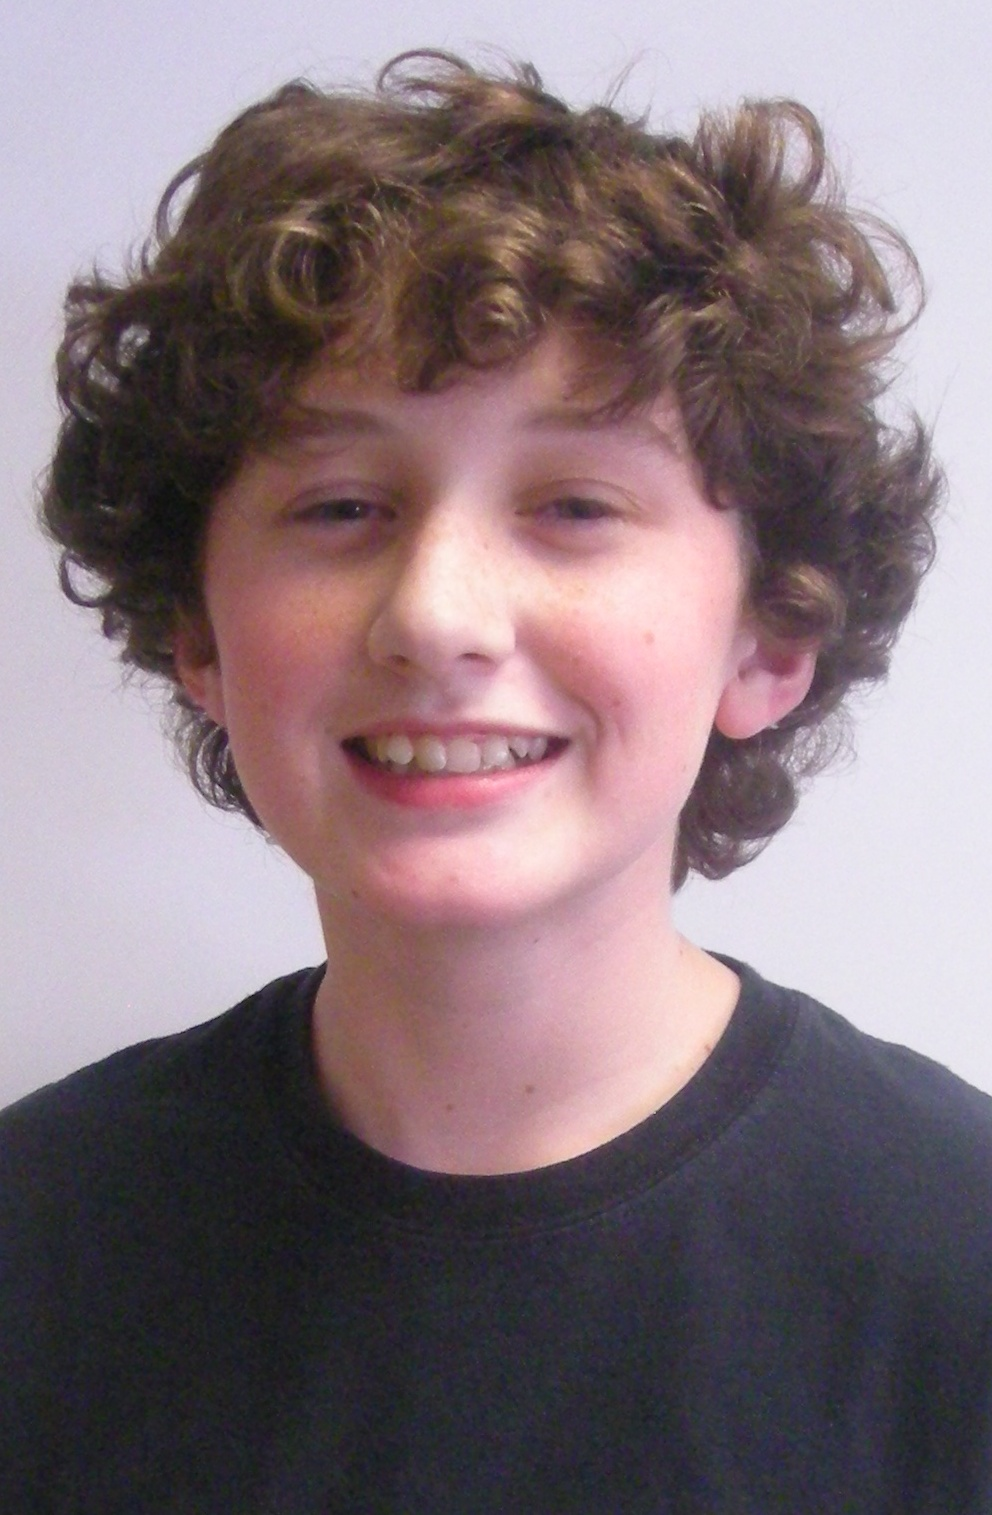 In the Wings: Once Upon a Mattress. Meet Oscar Dillman.